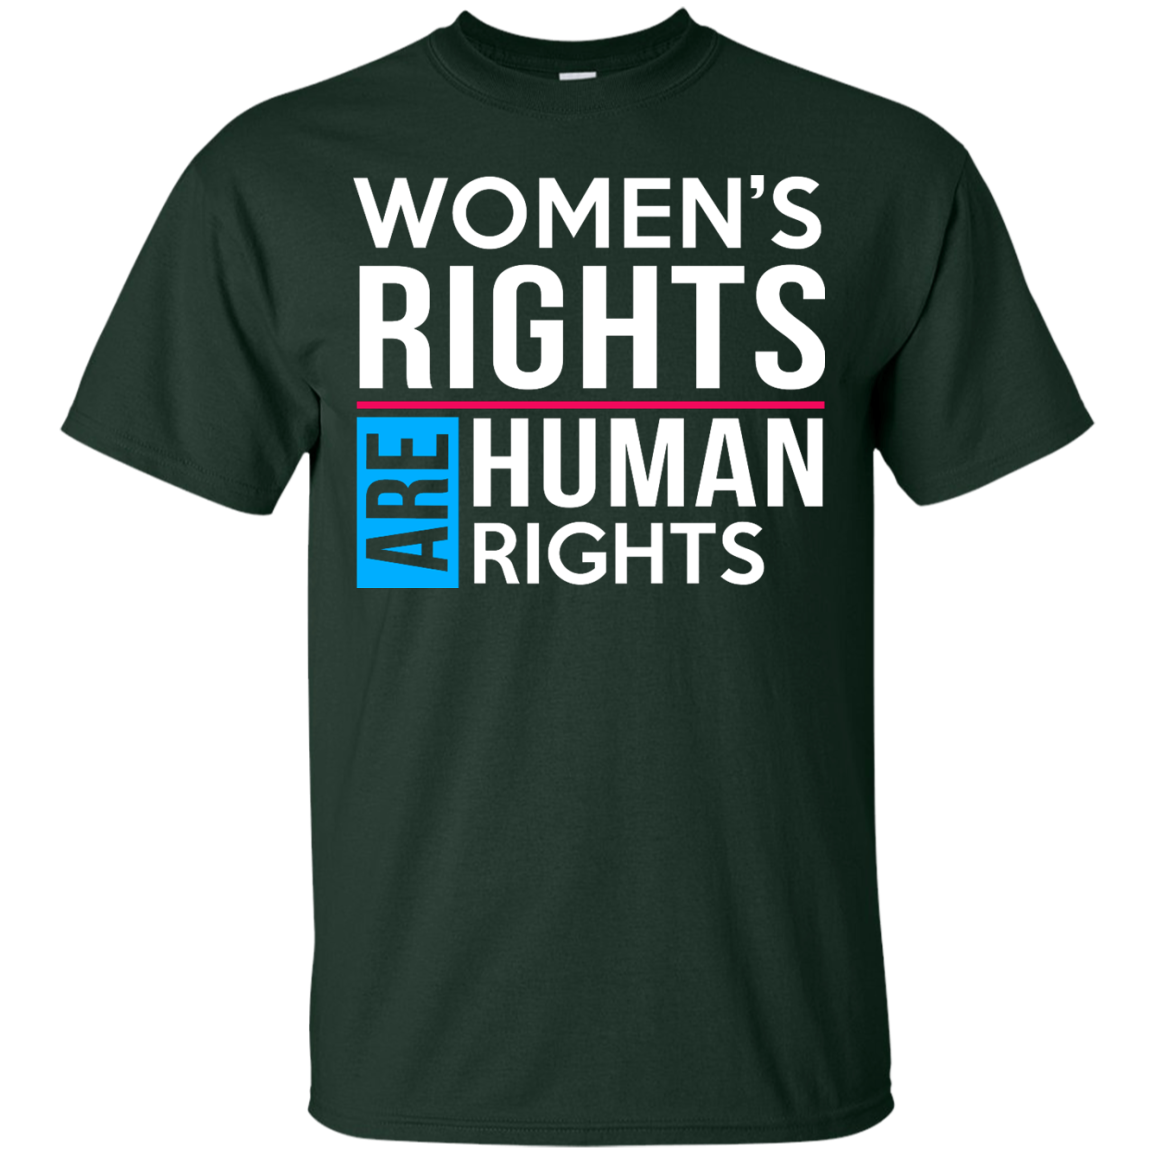 women s rights are human rights From 1905 to 2015, over 100 years of milestones for international women's rights.